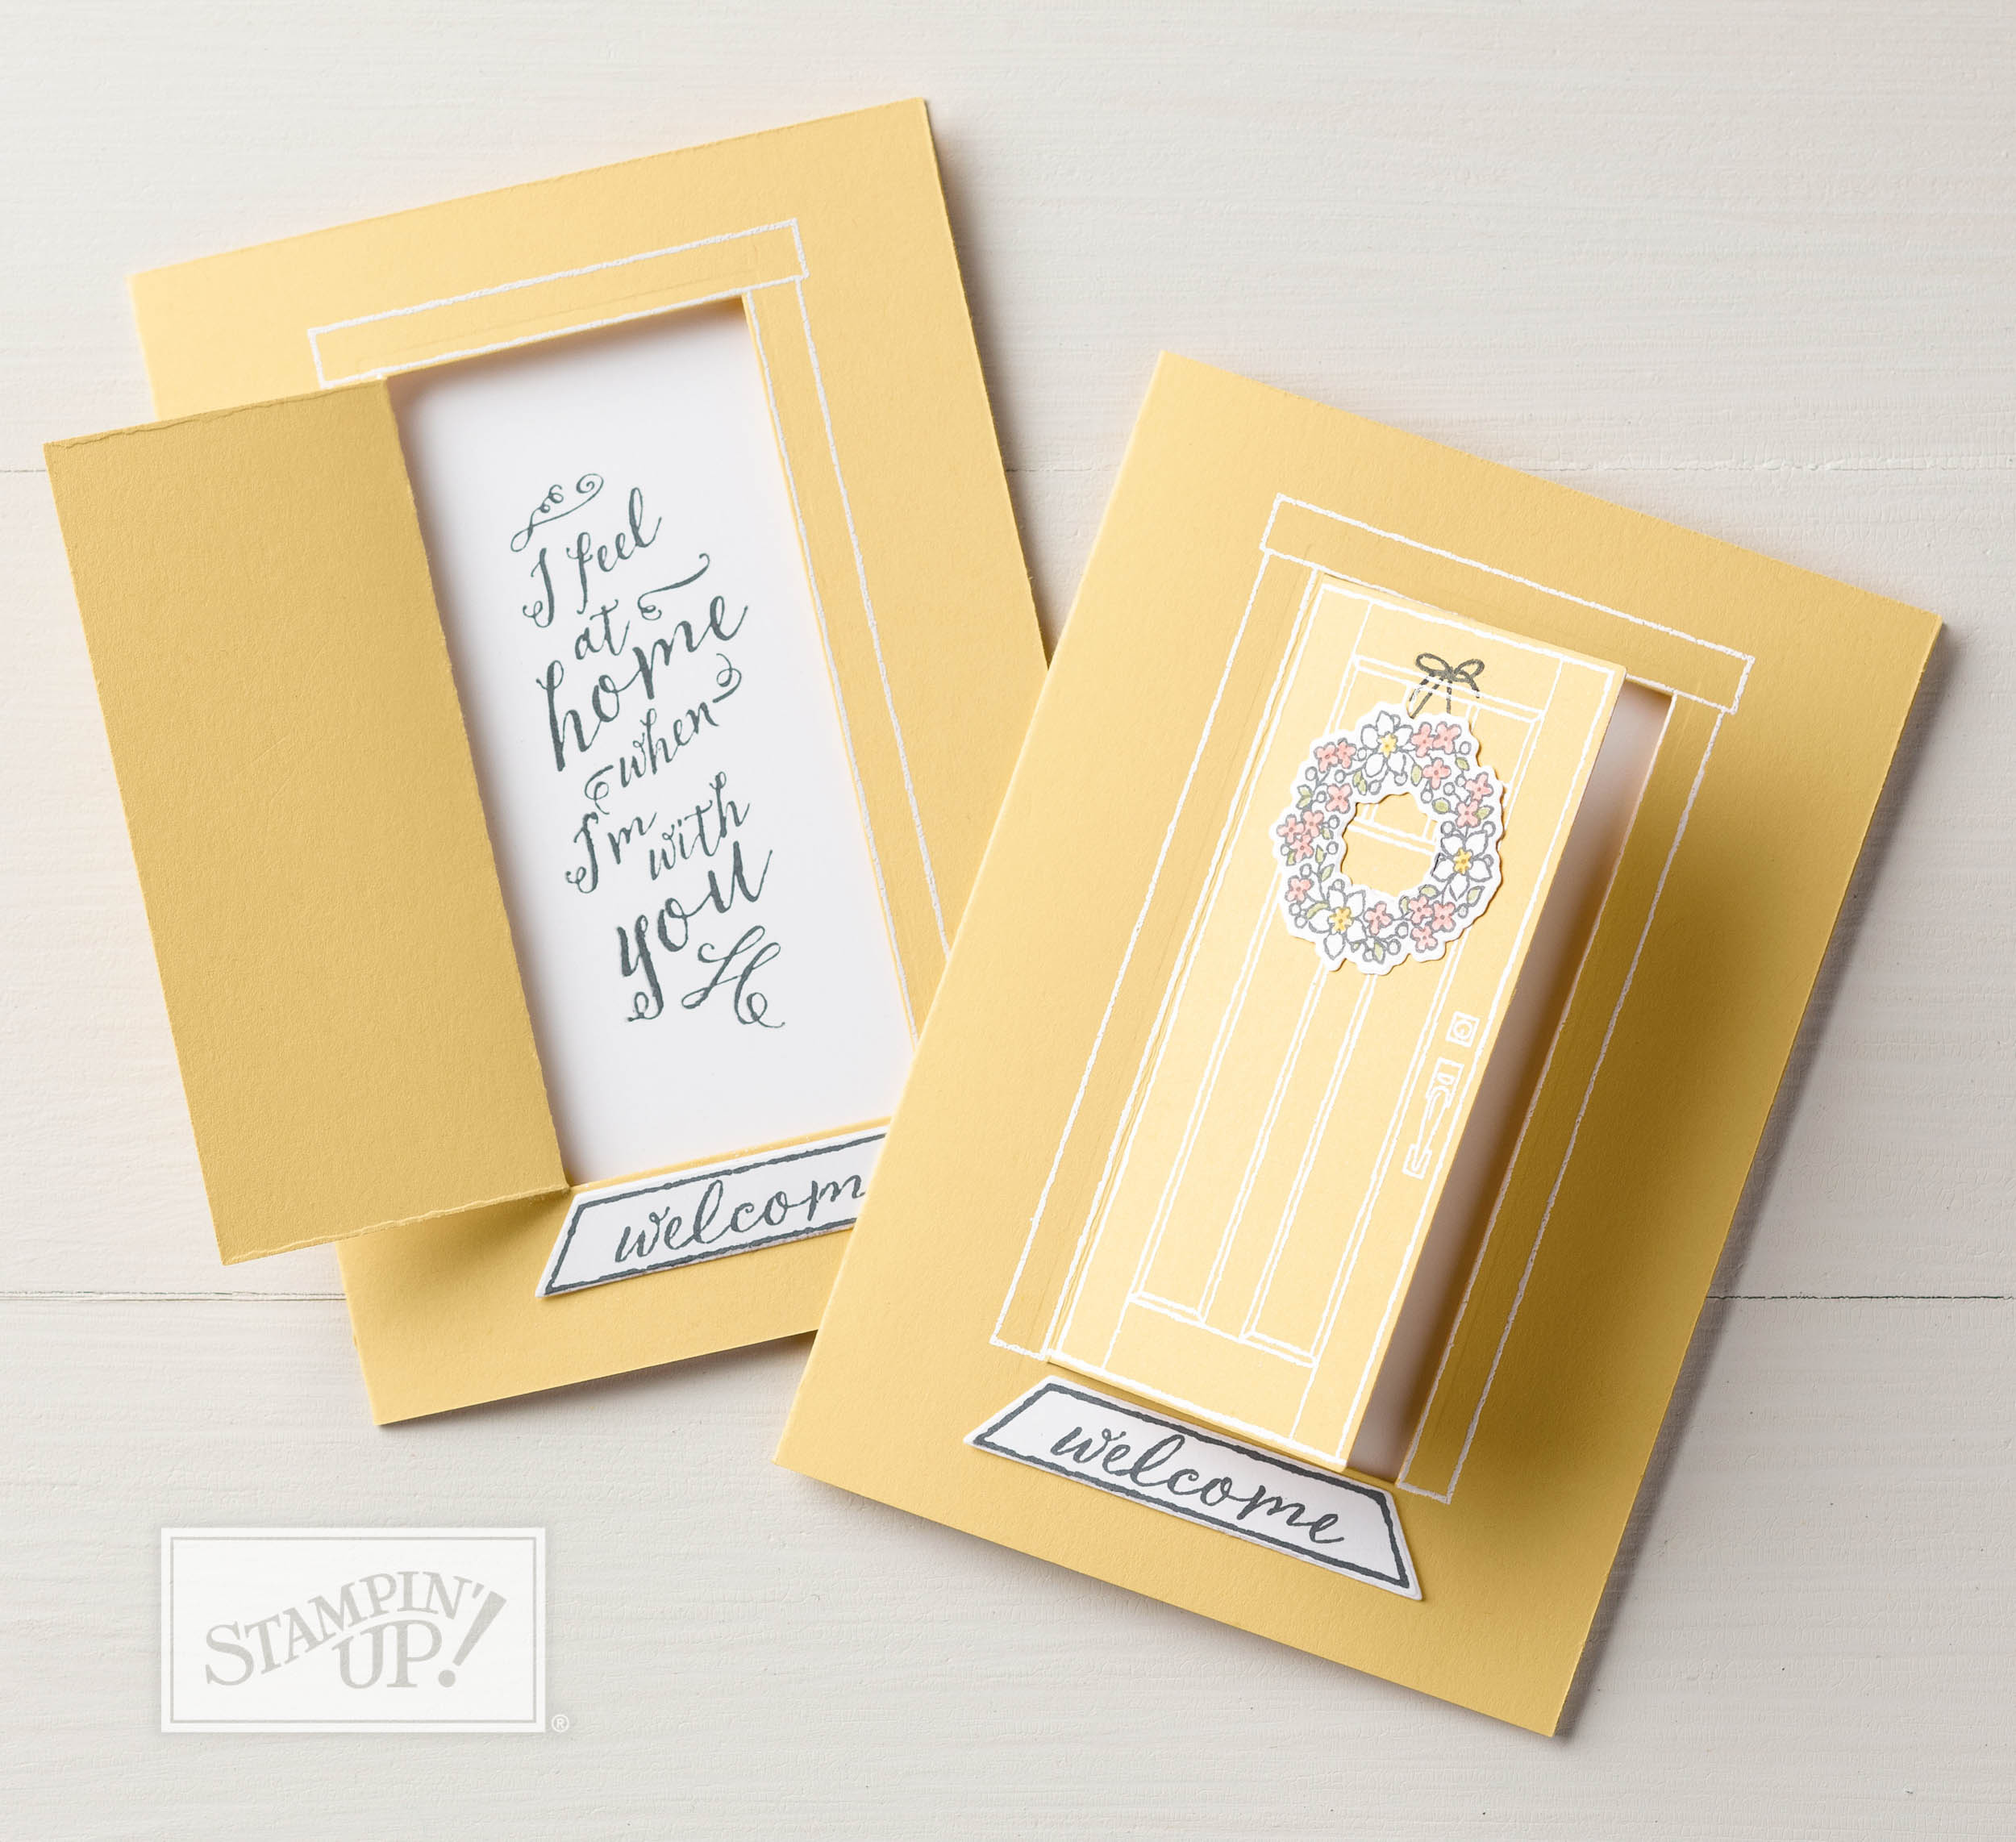 At Home with You Bundle, Stampin Up, #creativeleeyours, wendy lee, video, rubber stamps, stamping, handmade card